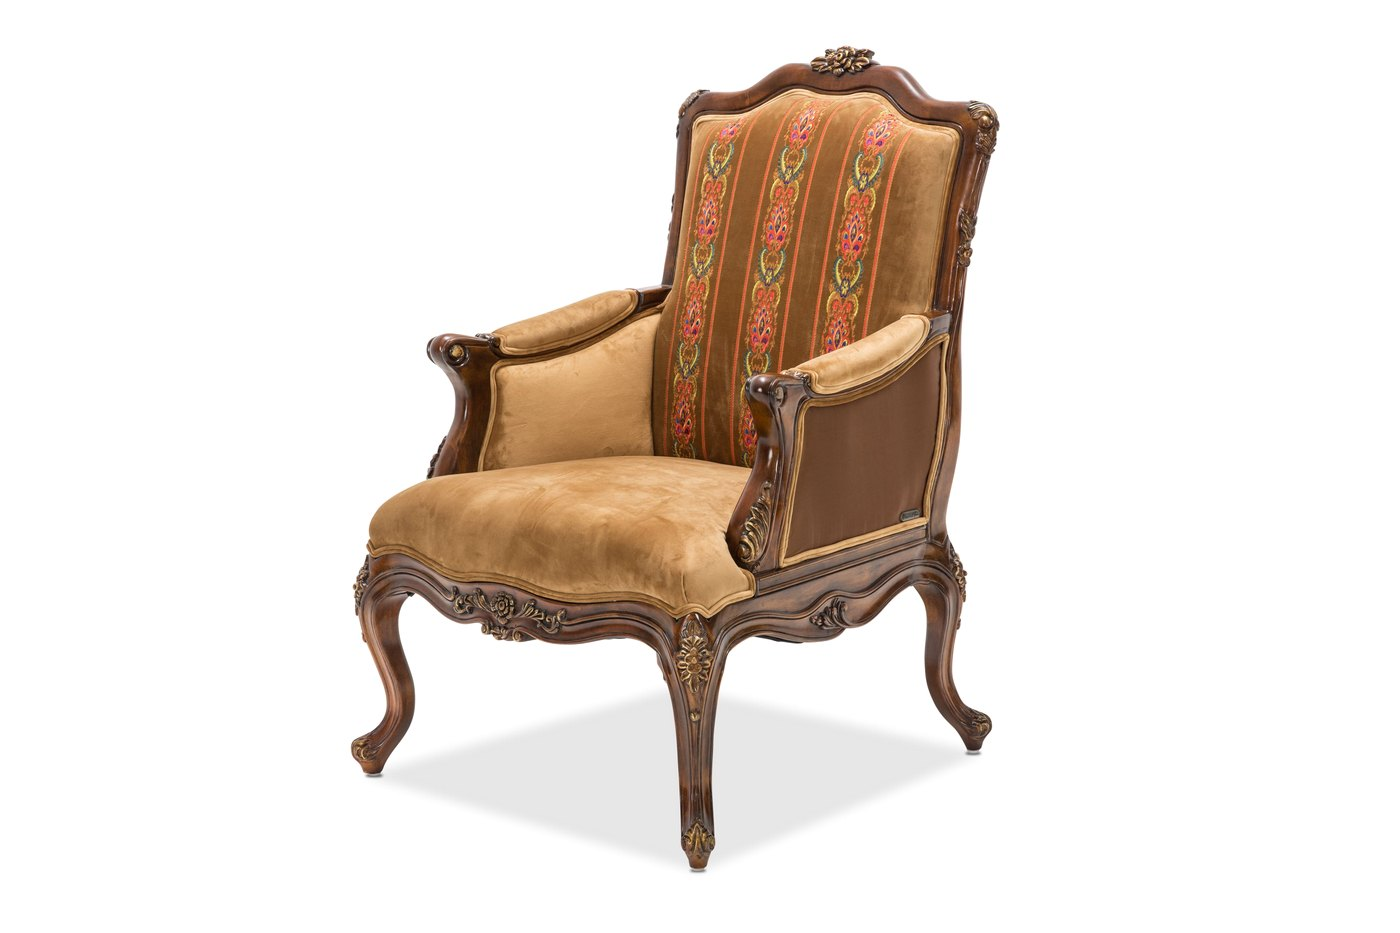 Wood Accent Chair Sienna Victorial Accent Chair In Butterscotch With Carved